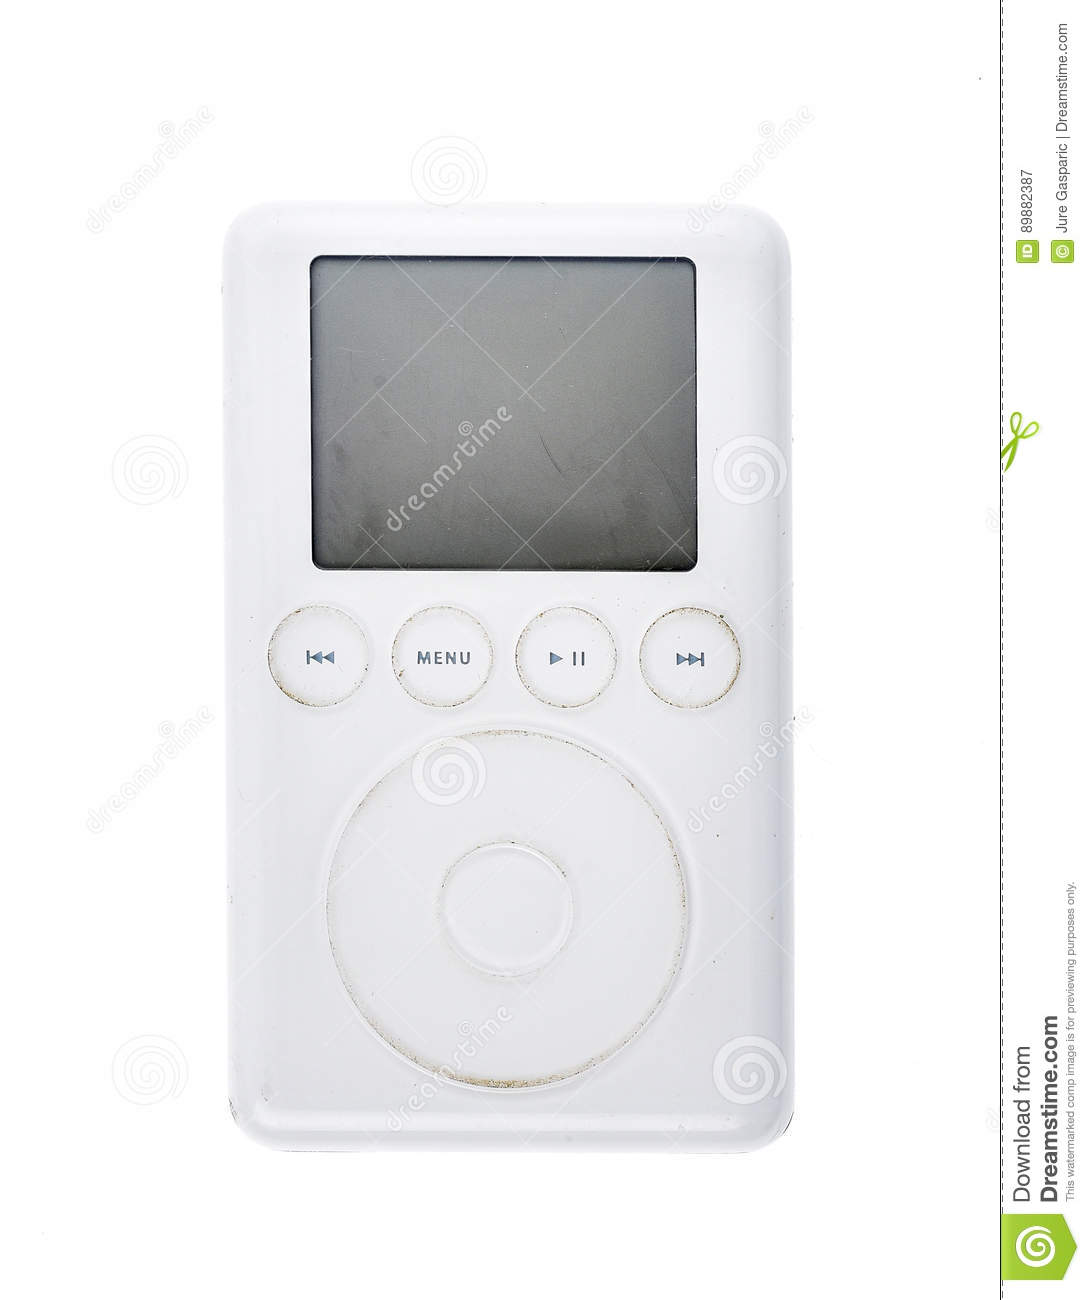 Old Apple iPod Classic 3rd Generation 15Gb 2003 mp3 player.